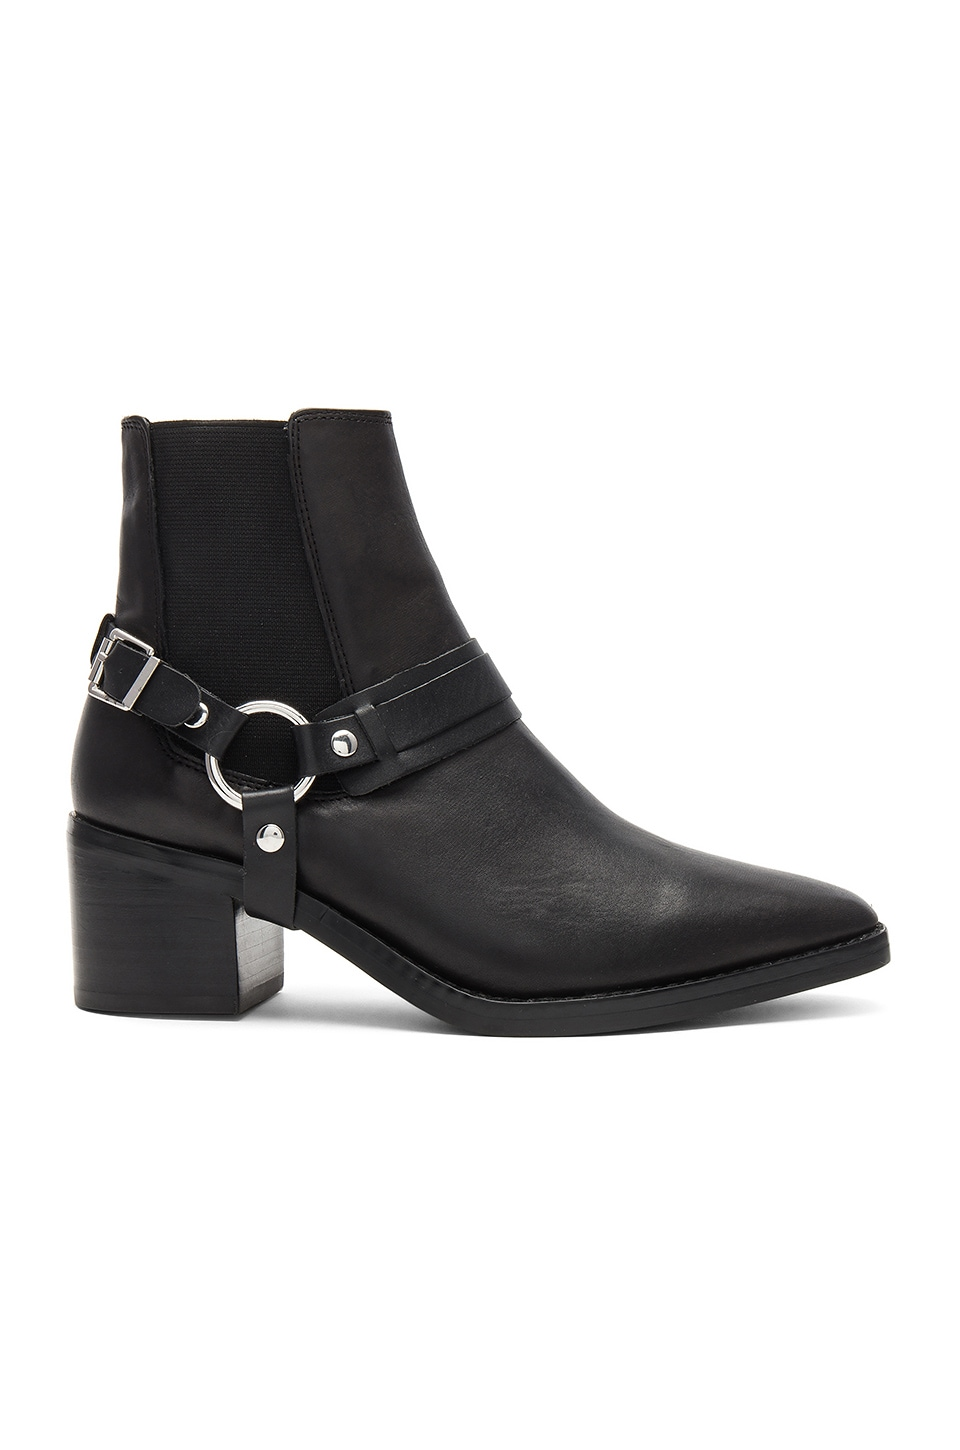 Tony Bianco Sabana Boot in Black Albany